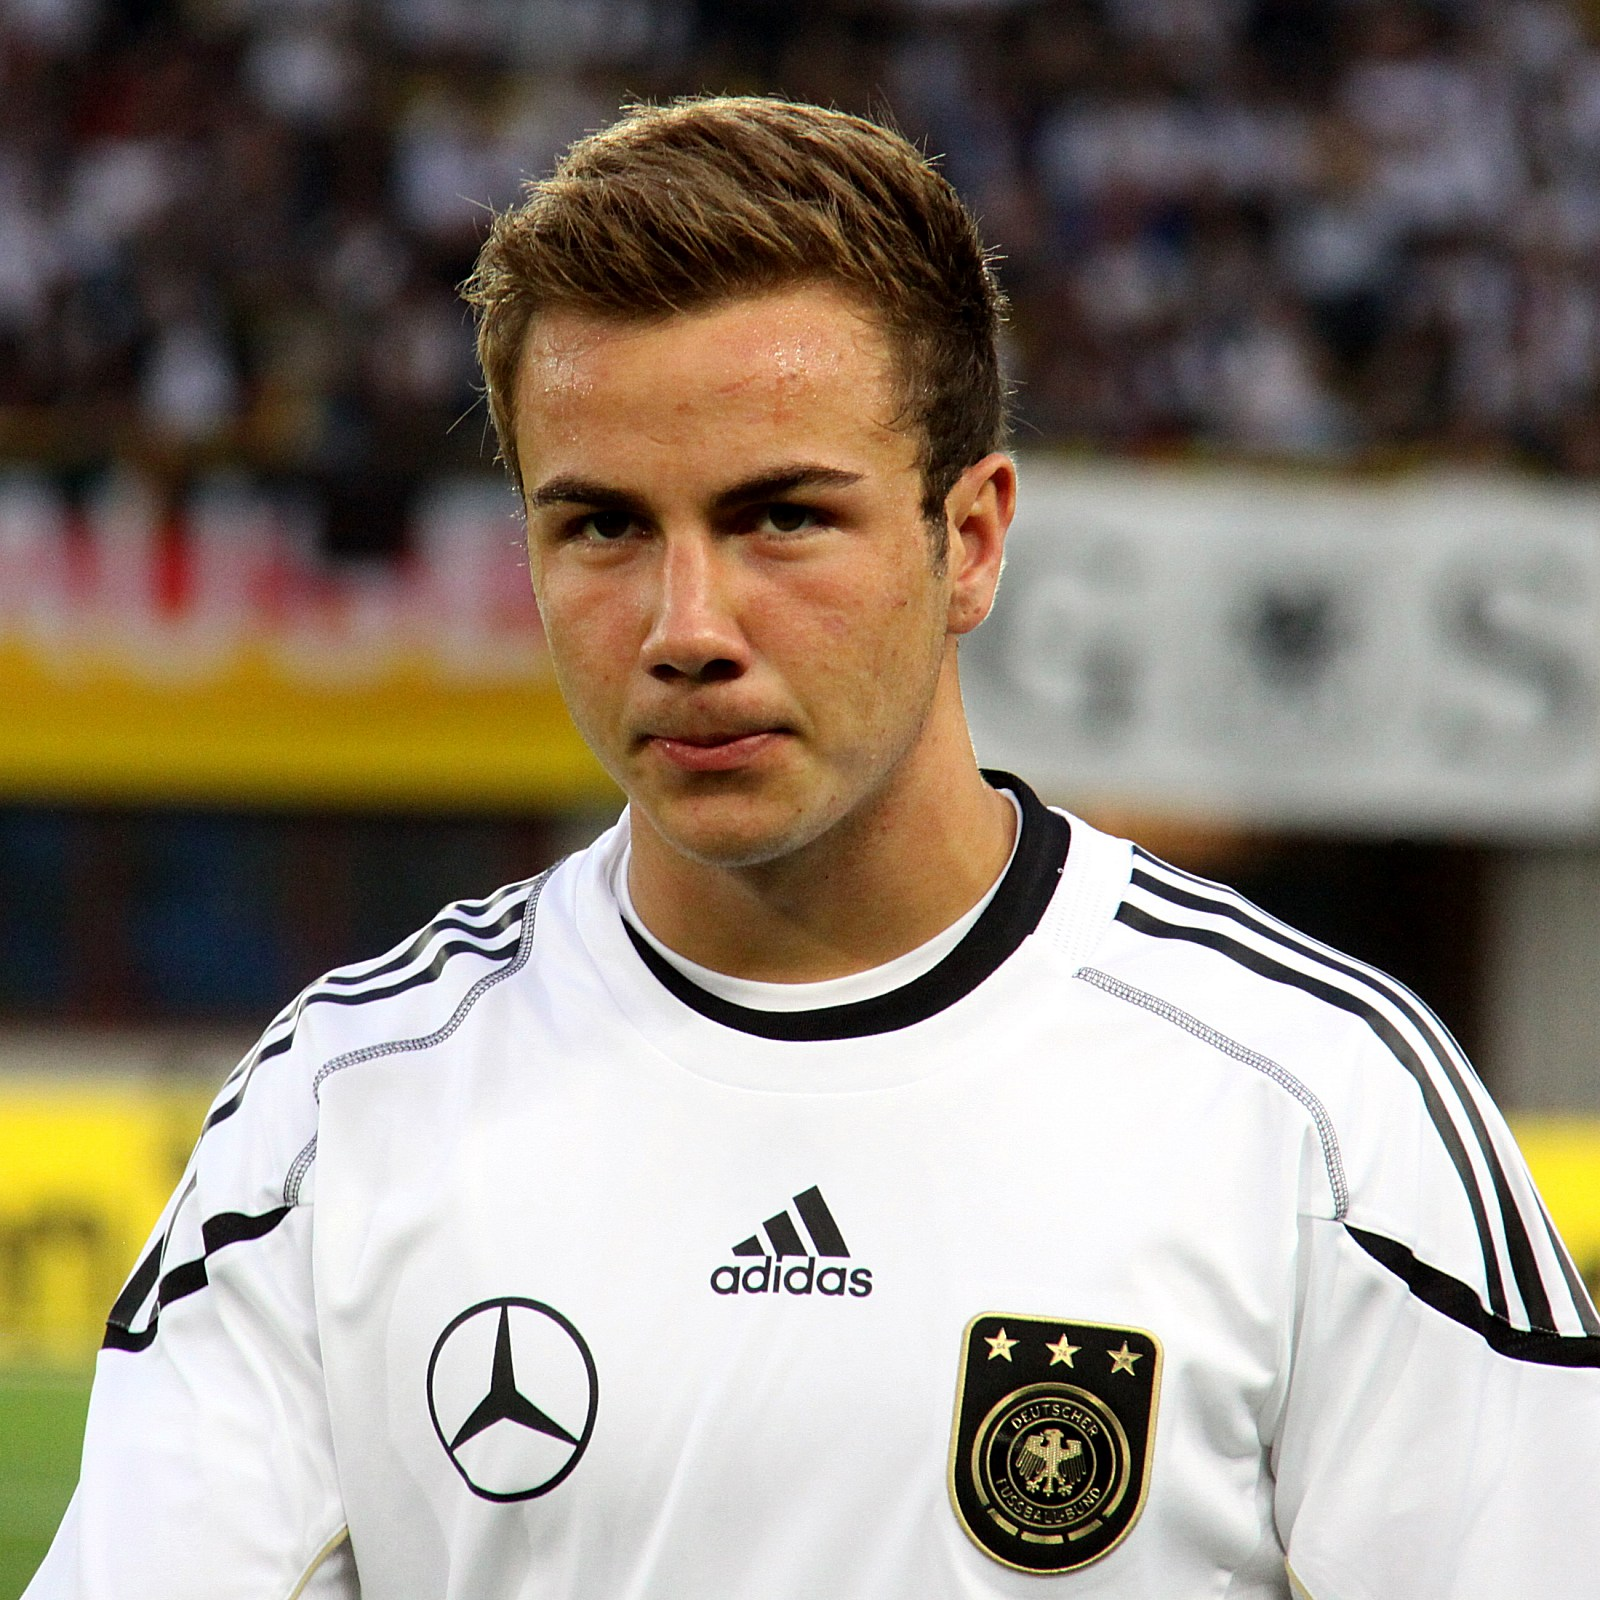 Mario Götze 2020 Dunkelblond Haar & Alternative Haarstil.